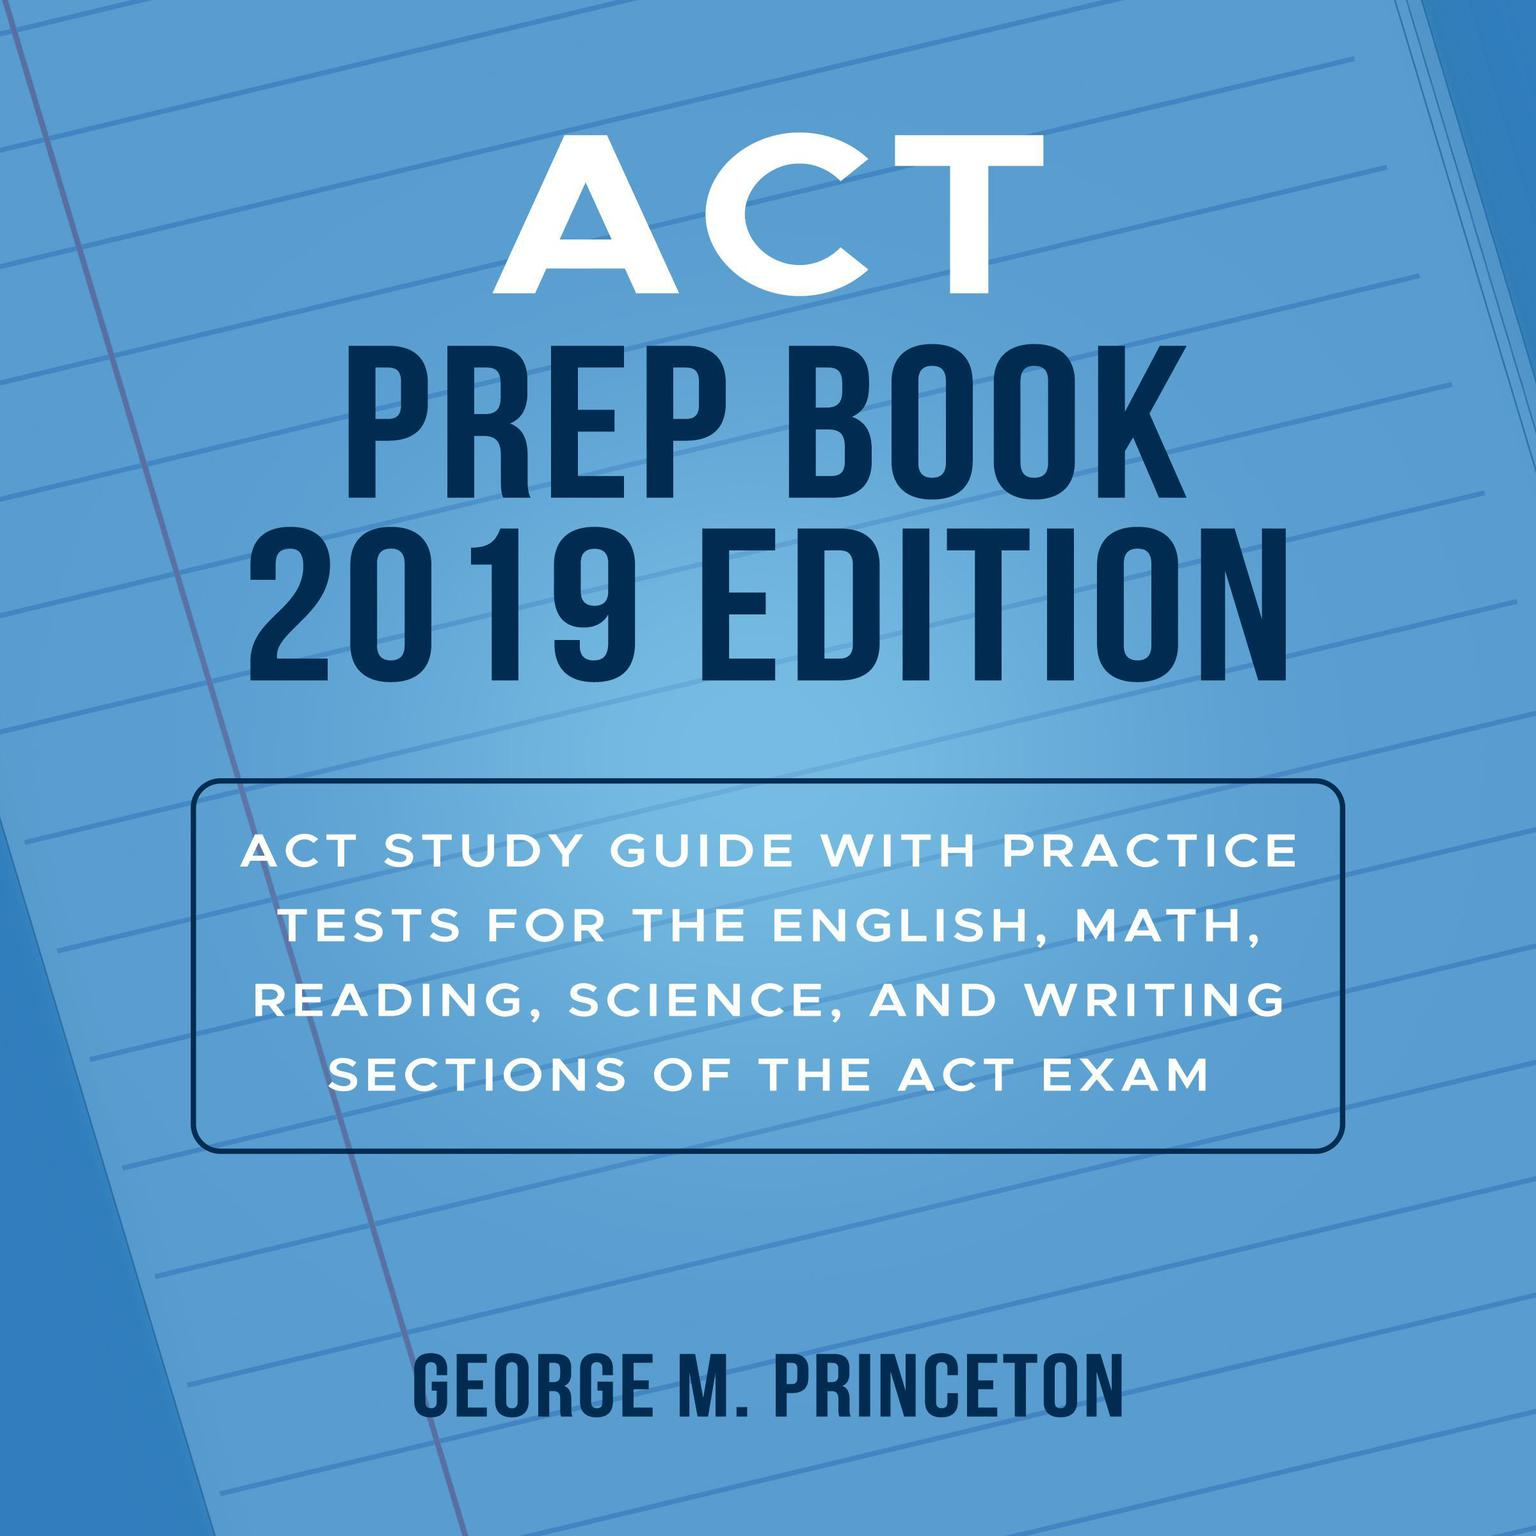 ACT Prep Book 2019 Edition: Act Study Guide With Practice Tests For The  English, Math, Reading, Science, And Writing Sections Of The Act Exam